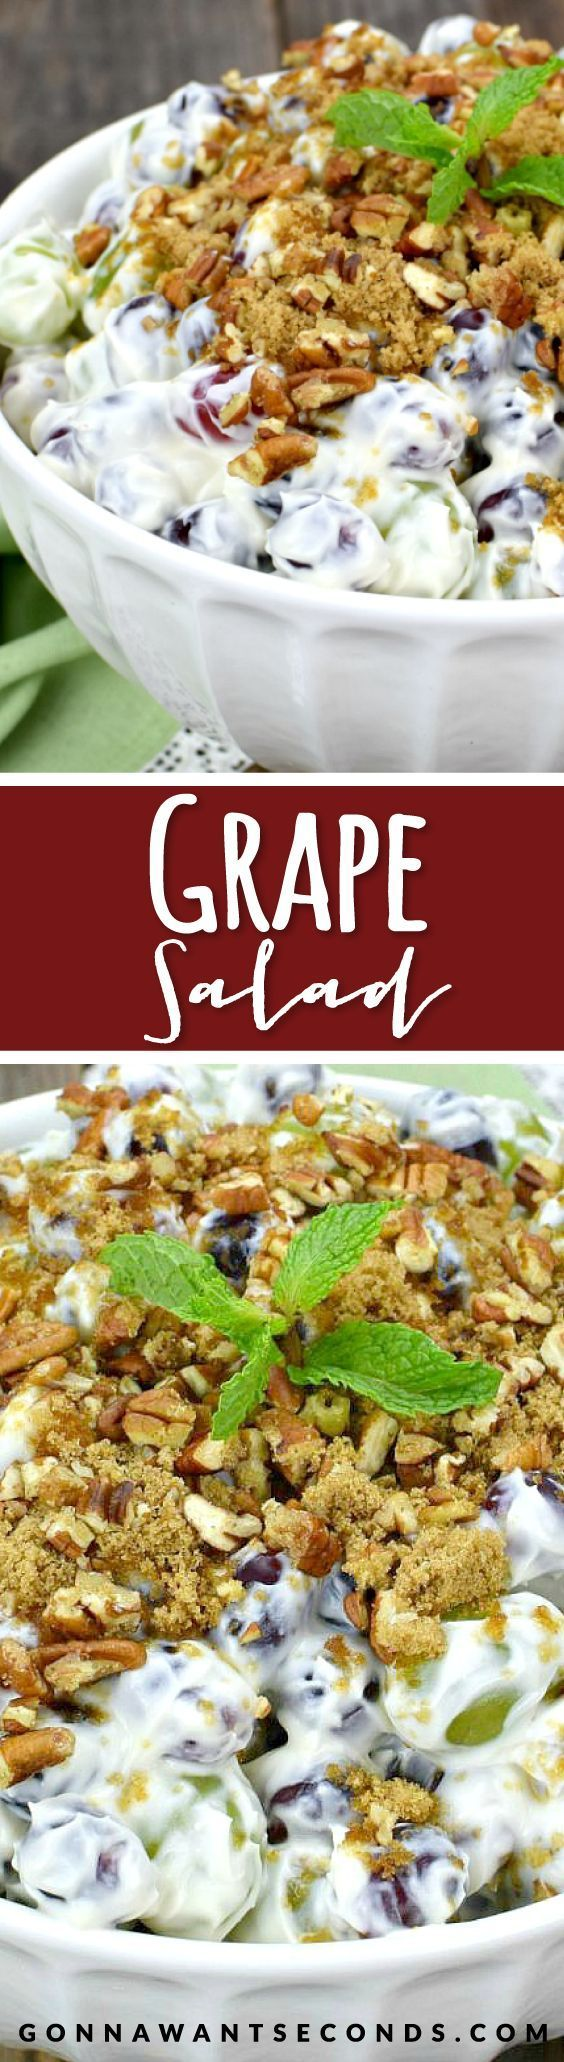 This refreshing Grape Salad is tossed with an amazing creamy, rich, luscious dressing and topped with a cruchy, nutty topping